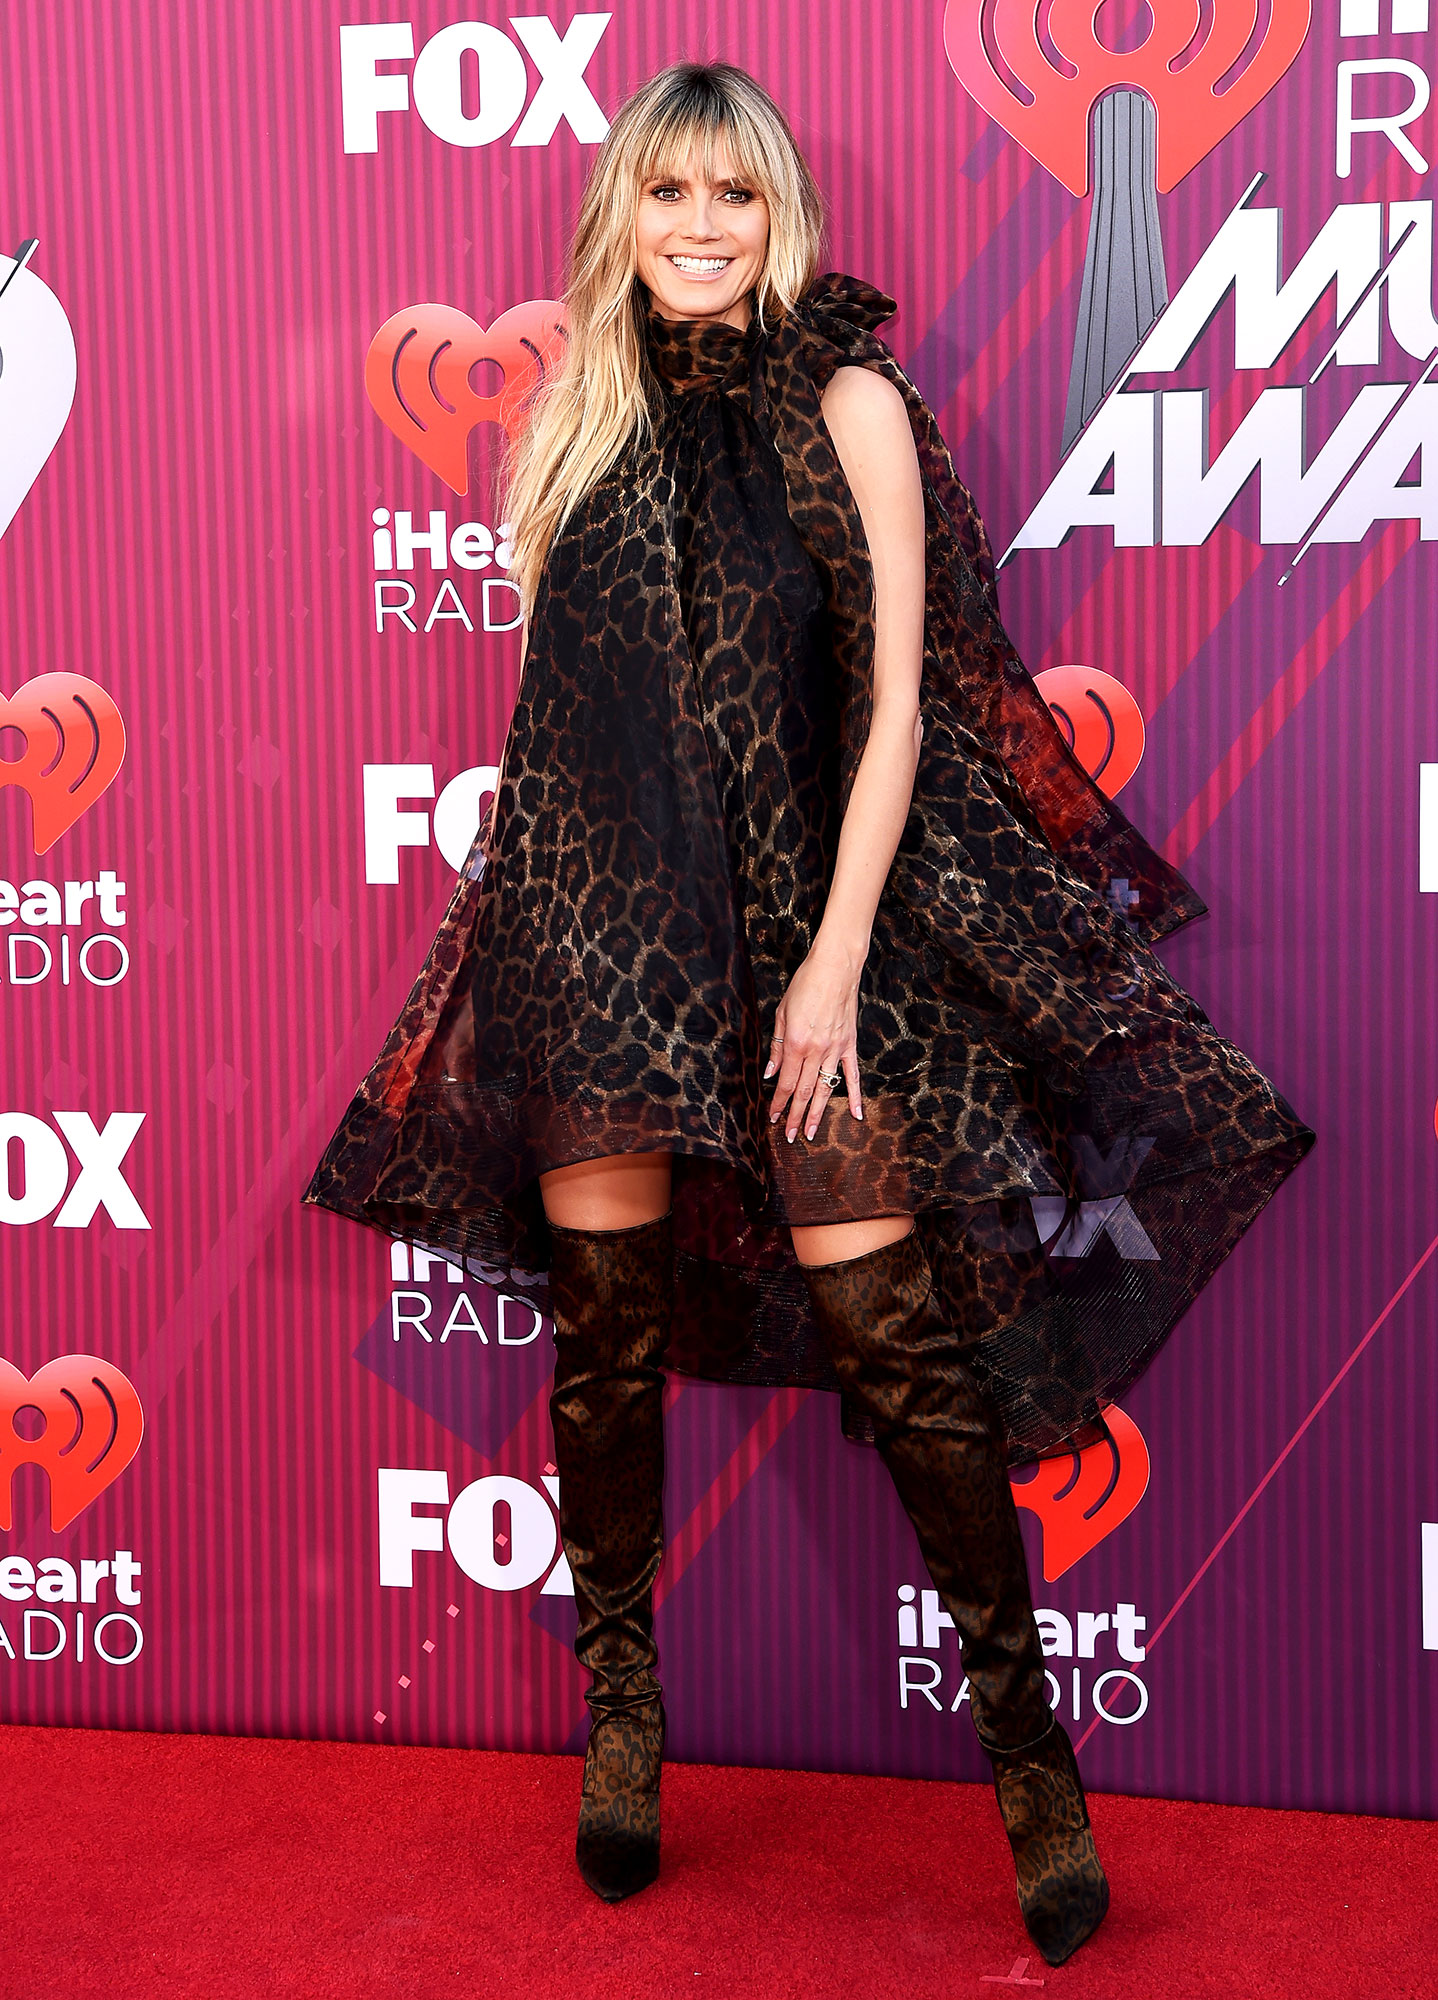 Heidi Klum See What the Stars Wore to the iHeart Radio Music Awards 2019 - Wearing an animal print Christian Siriano mini with matching Le Silla boots, Lorraine Schwartz jewels and a Tyler Ellis clutch.